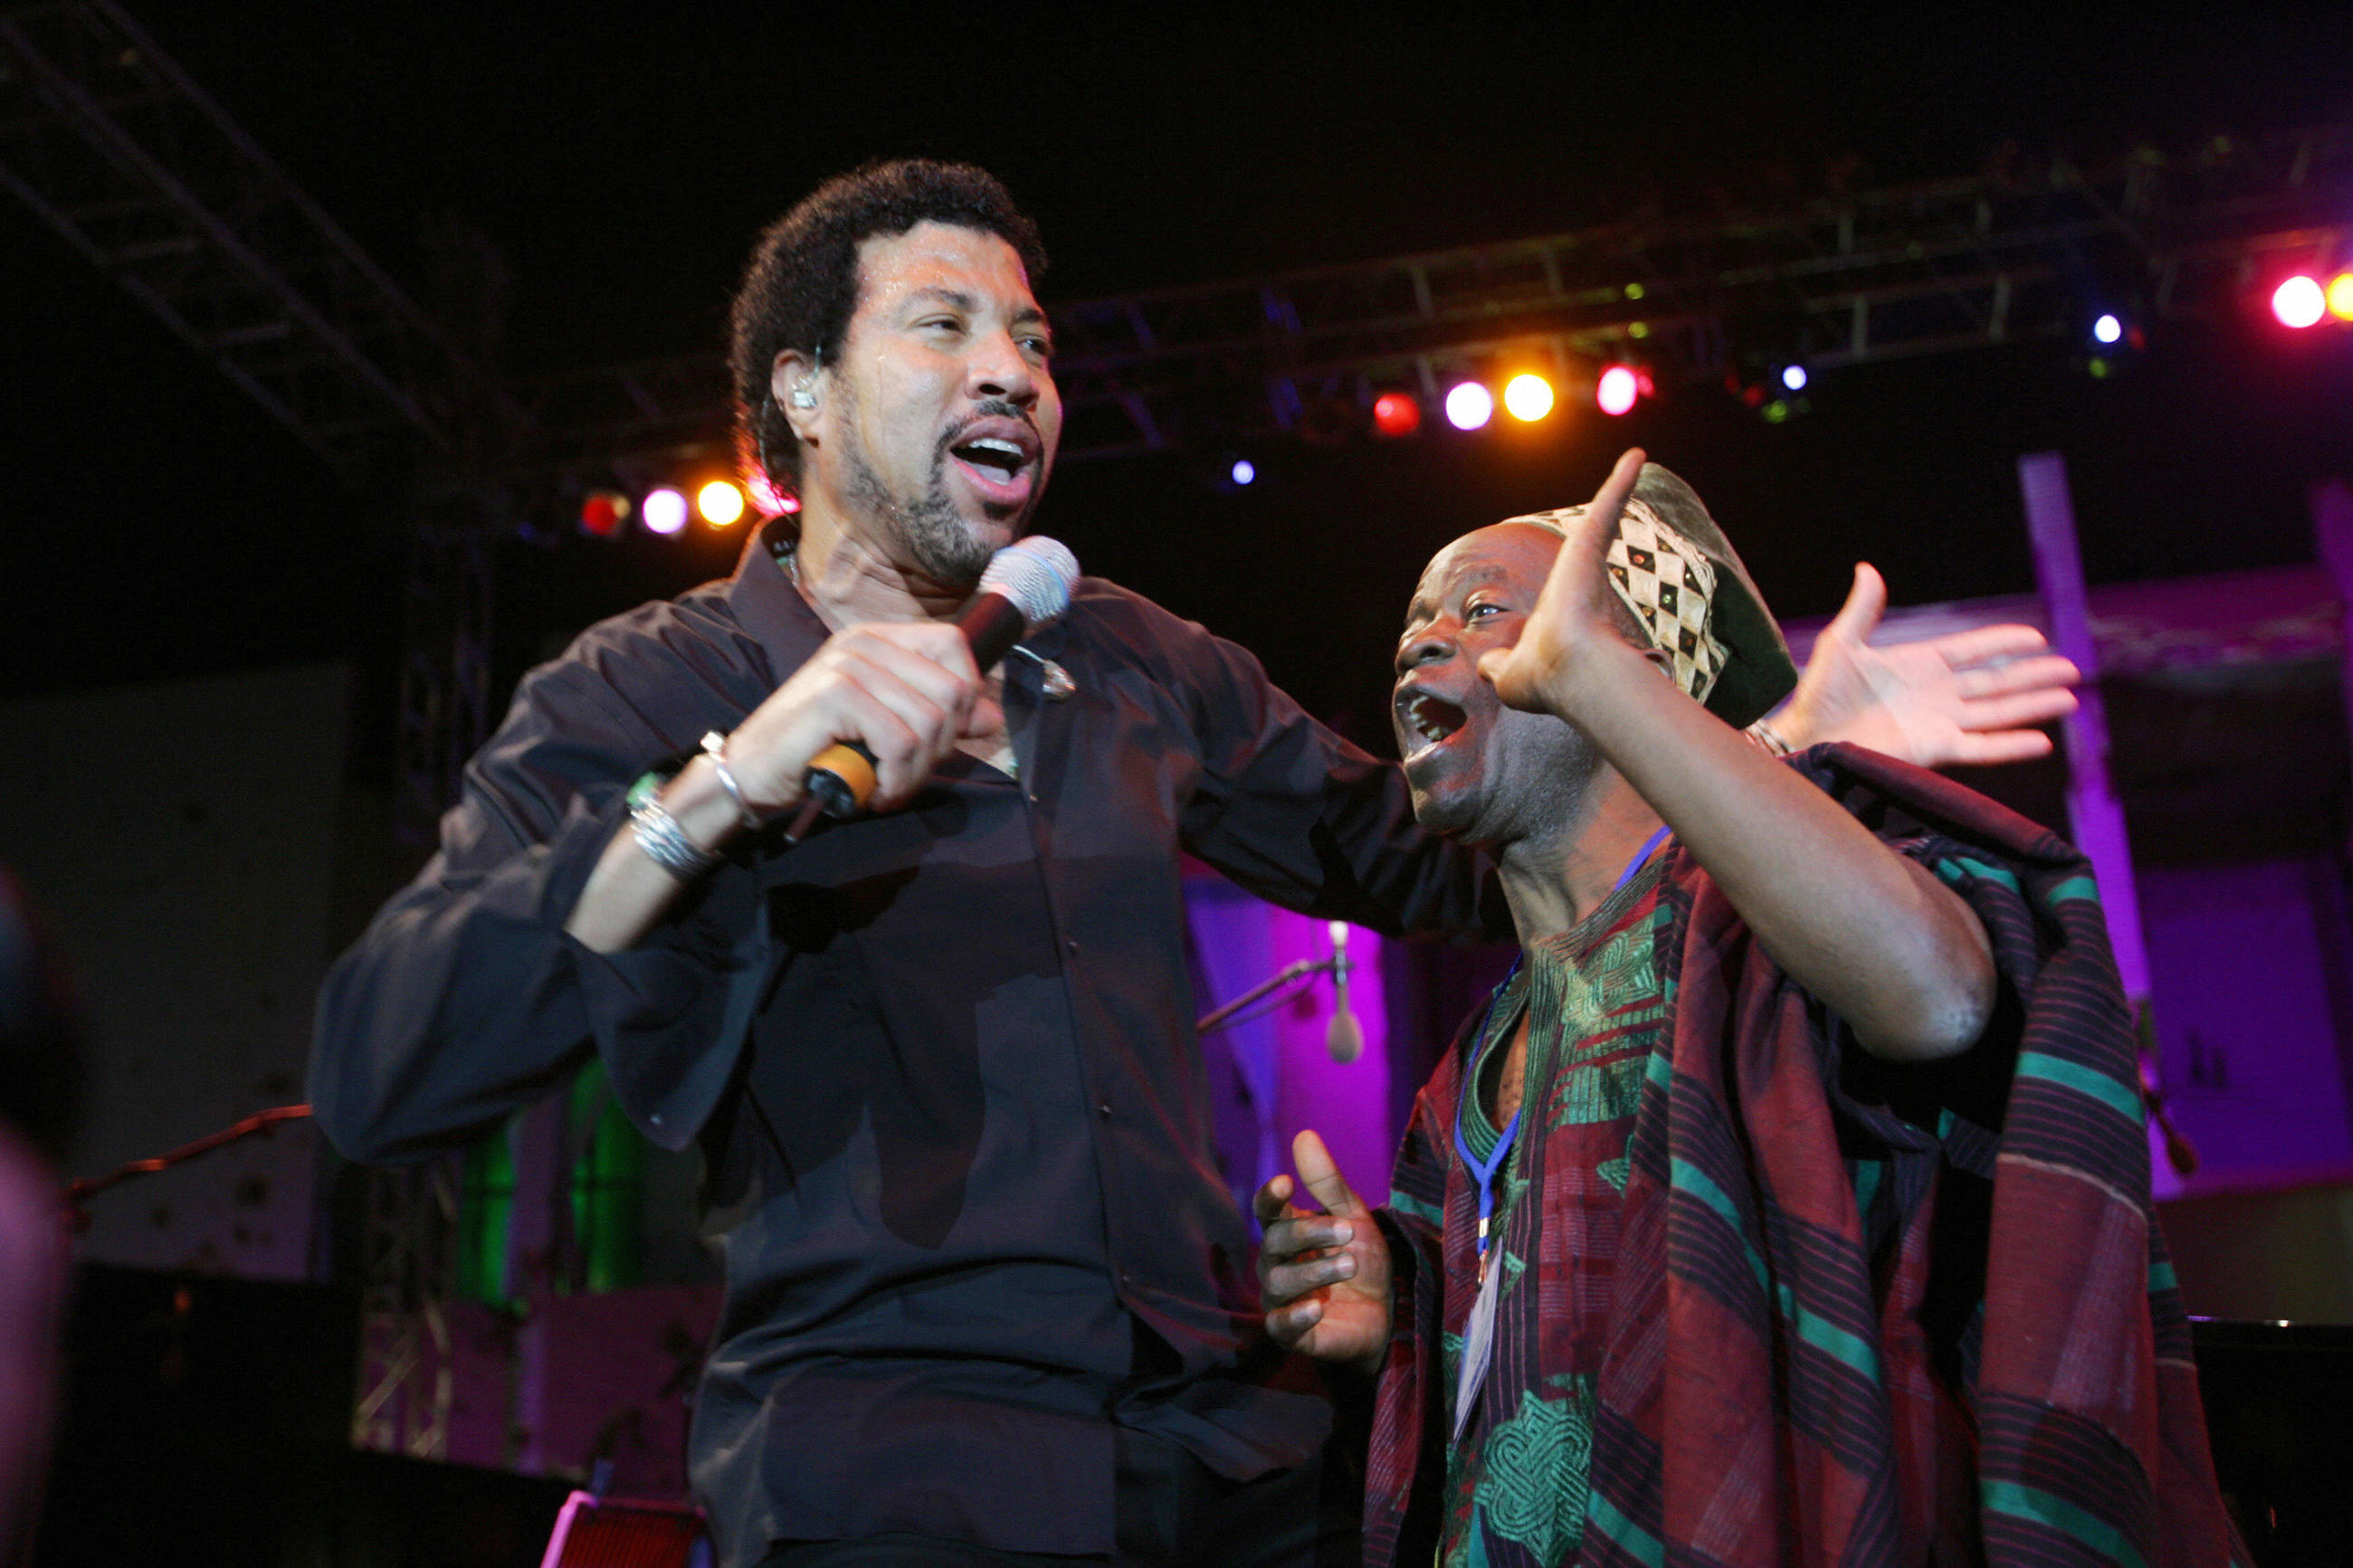 Lionel Richie performs with an unidentified man during a concert held in front of the house of Libyan leader Muammar Gadhafi in Tripoli on April 14, 2006.